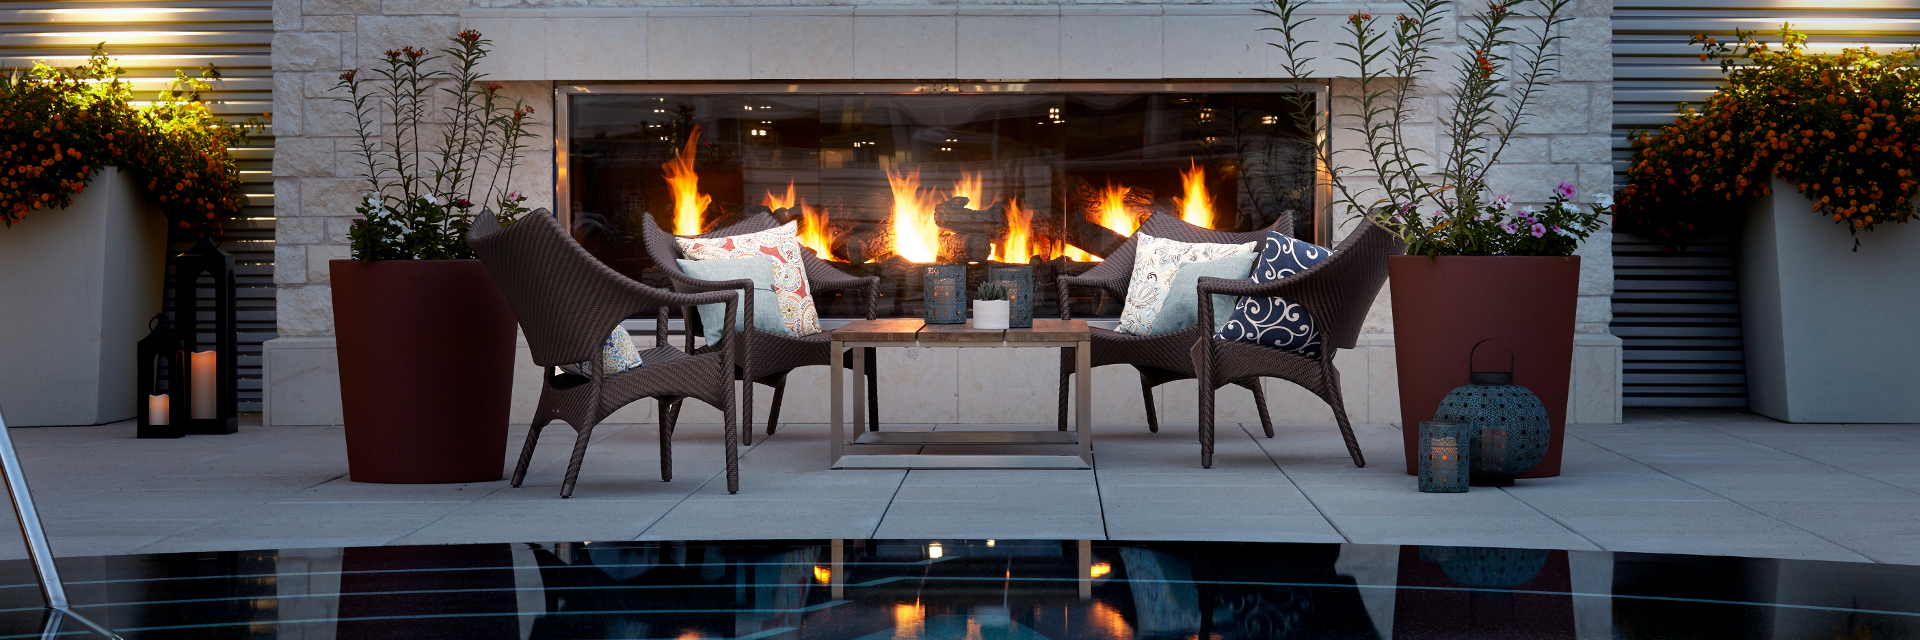 Archer Hotel Austin Pool Patio Fireplace